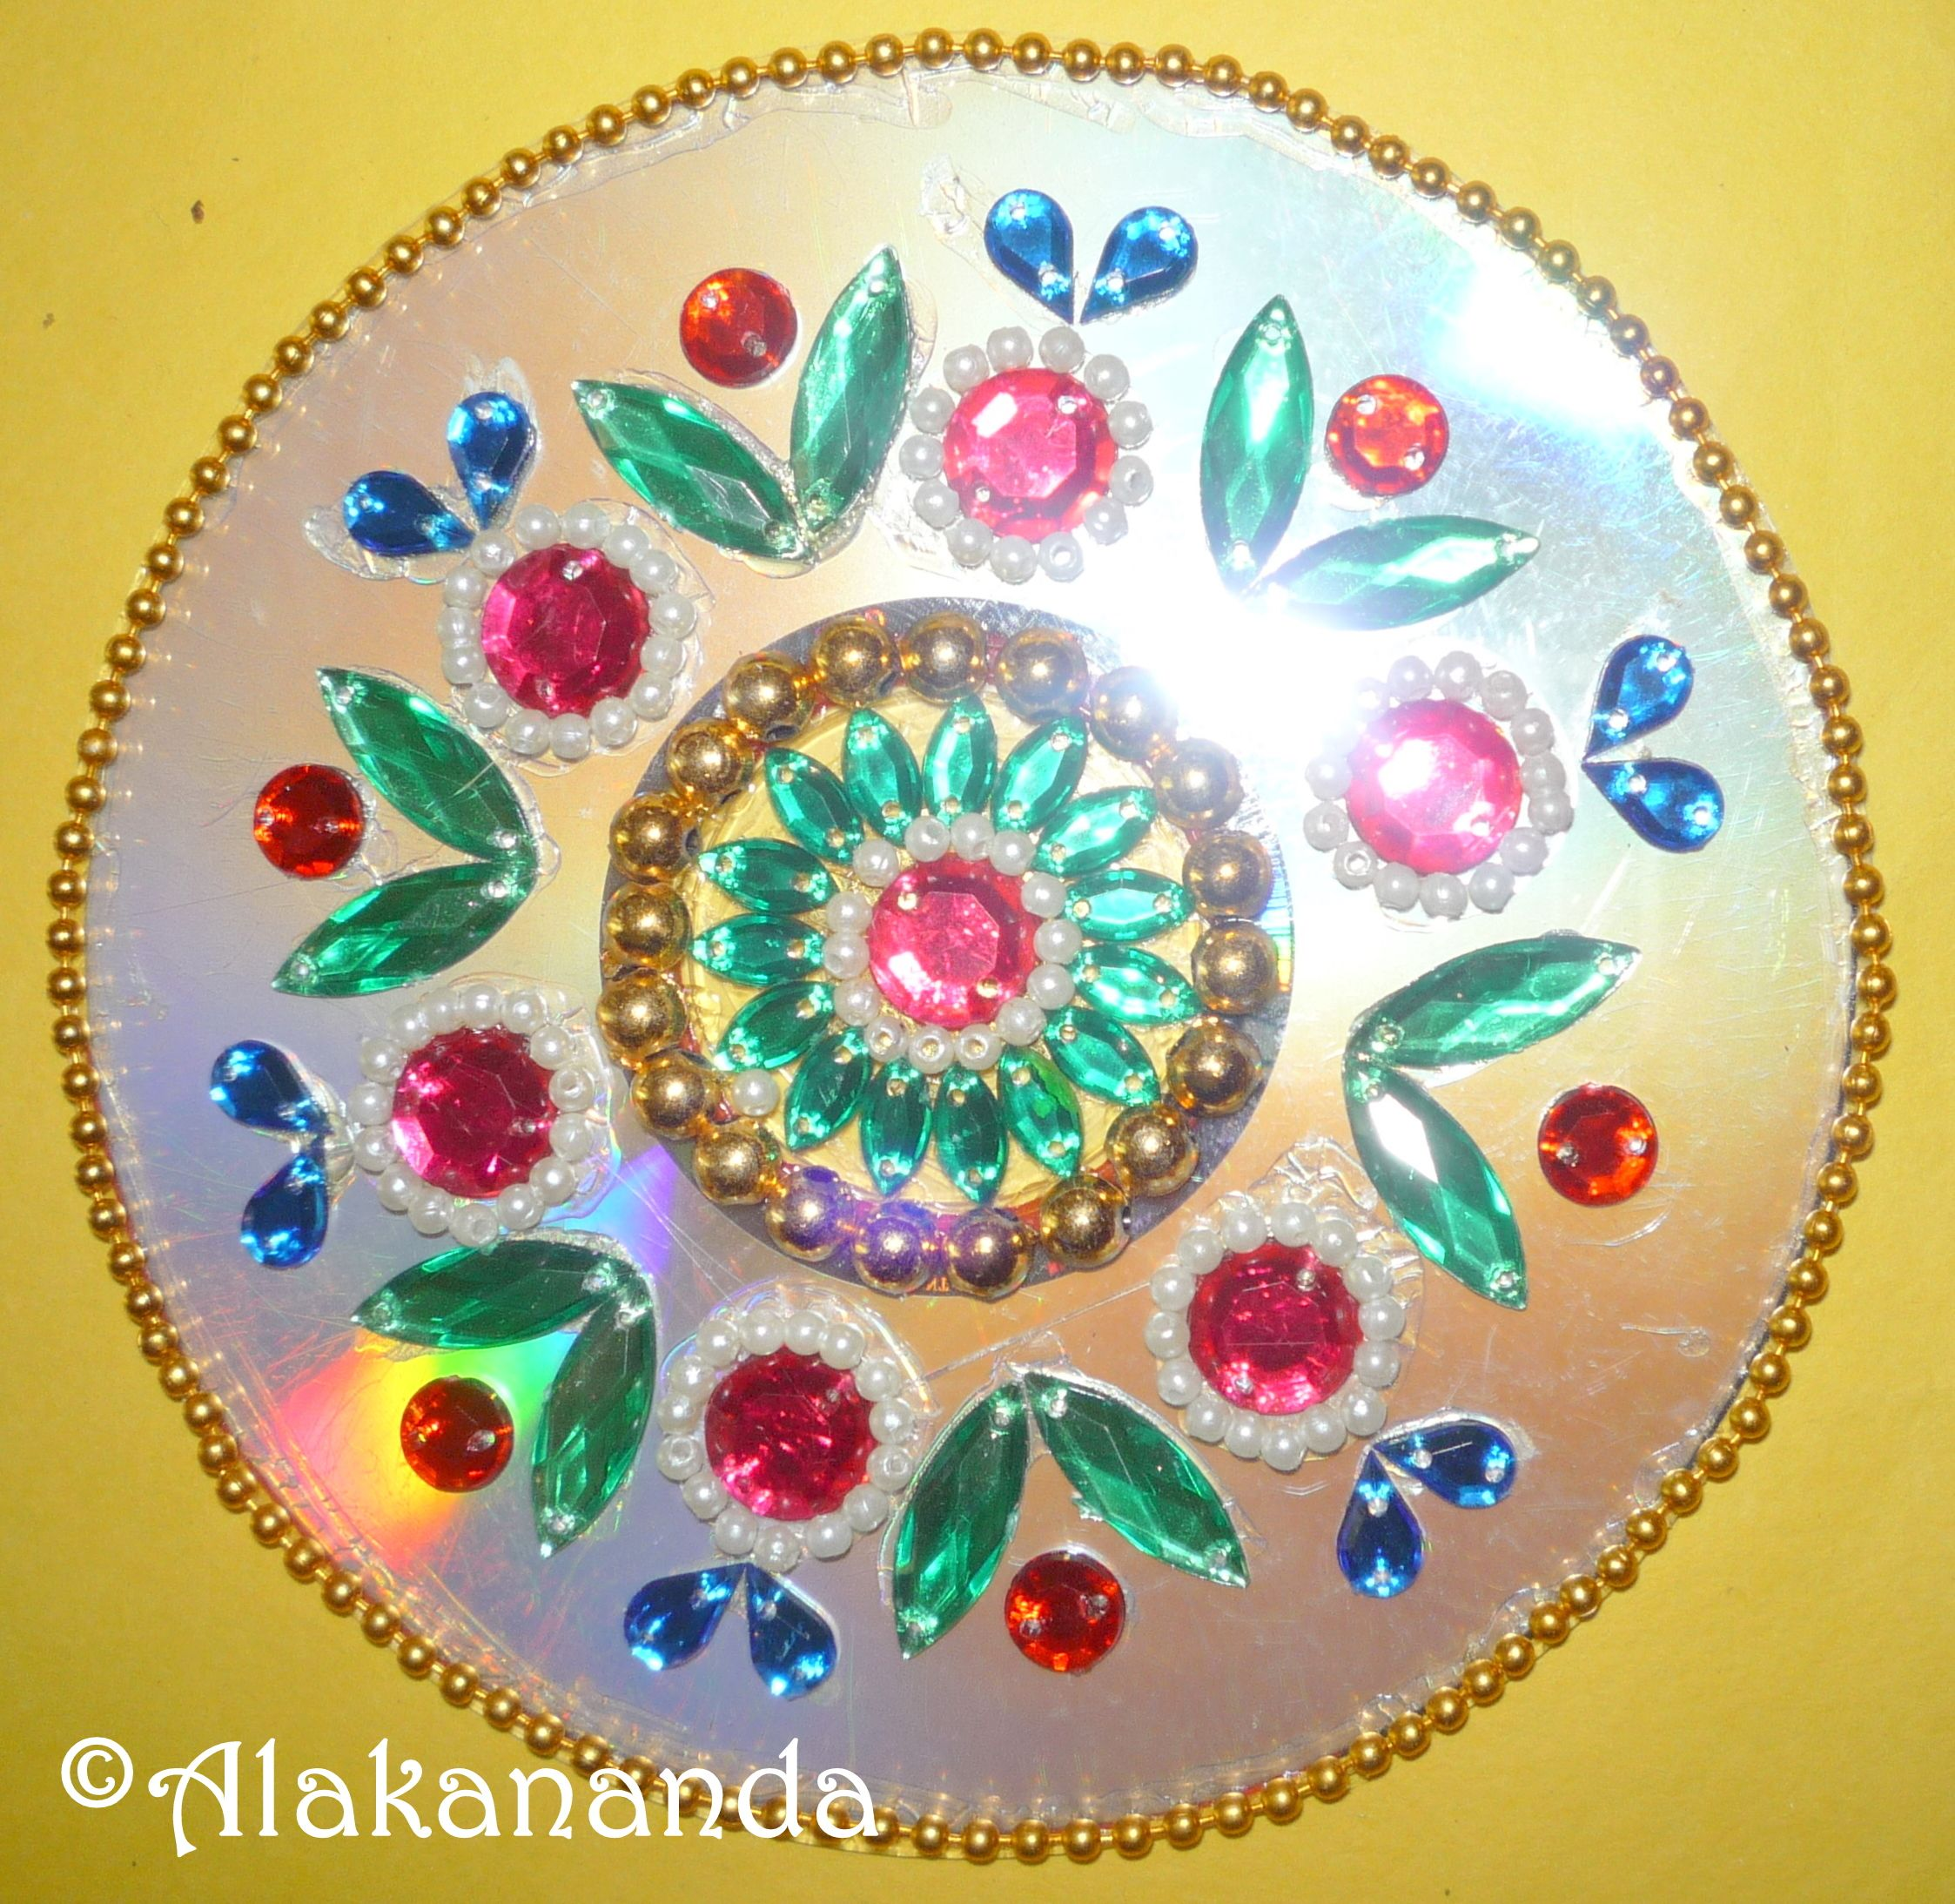 Diwali Decoration Ideas And Crafts Cd Rangoli Rangoli India Crafts Indian Crafts Cd Crafts